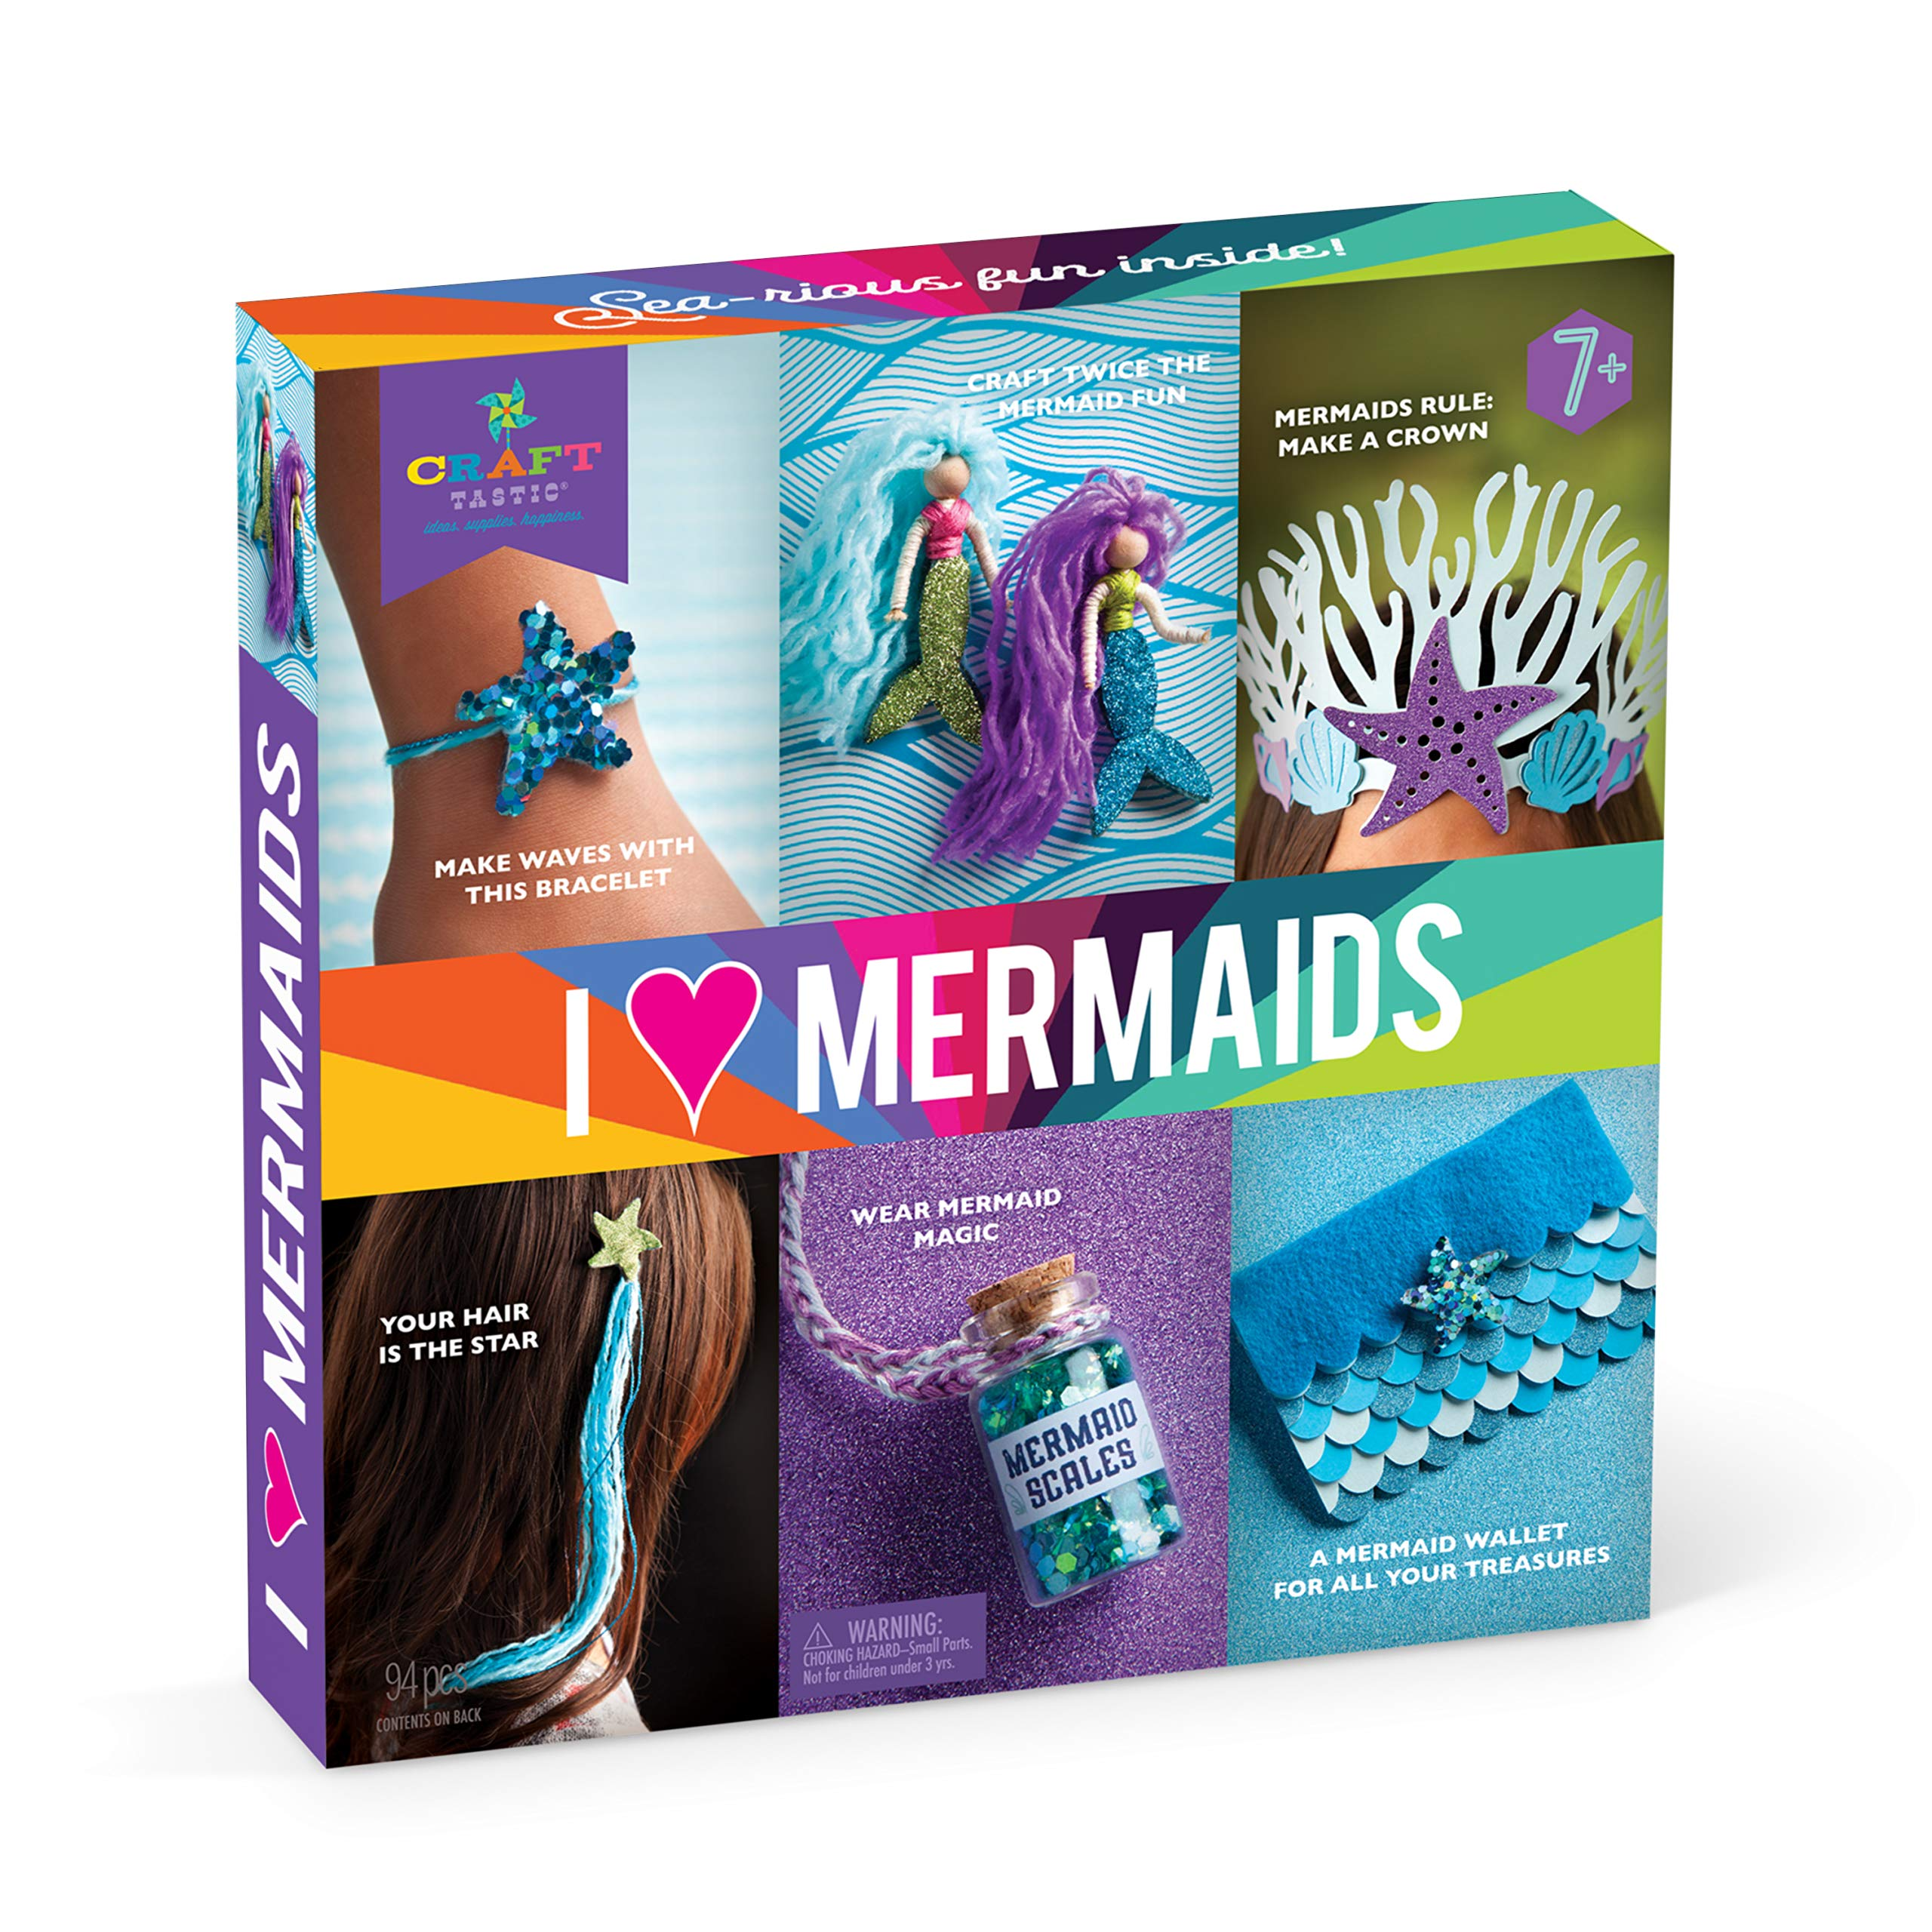 Craft-tastic - I Love Mermaids Kit - Craft Kit Includes 6 Mermaid-Themed Projects by Craft-tastic